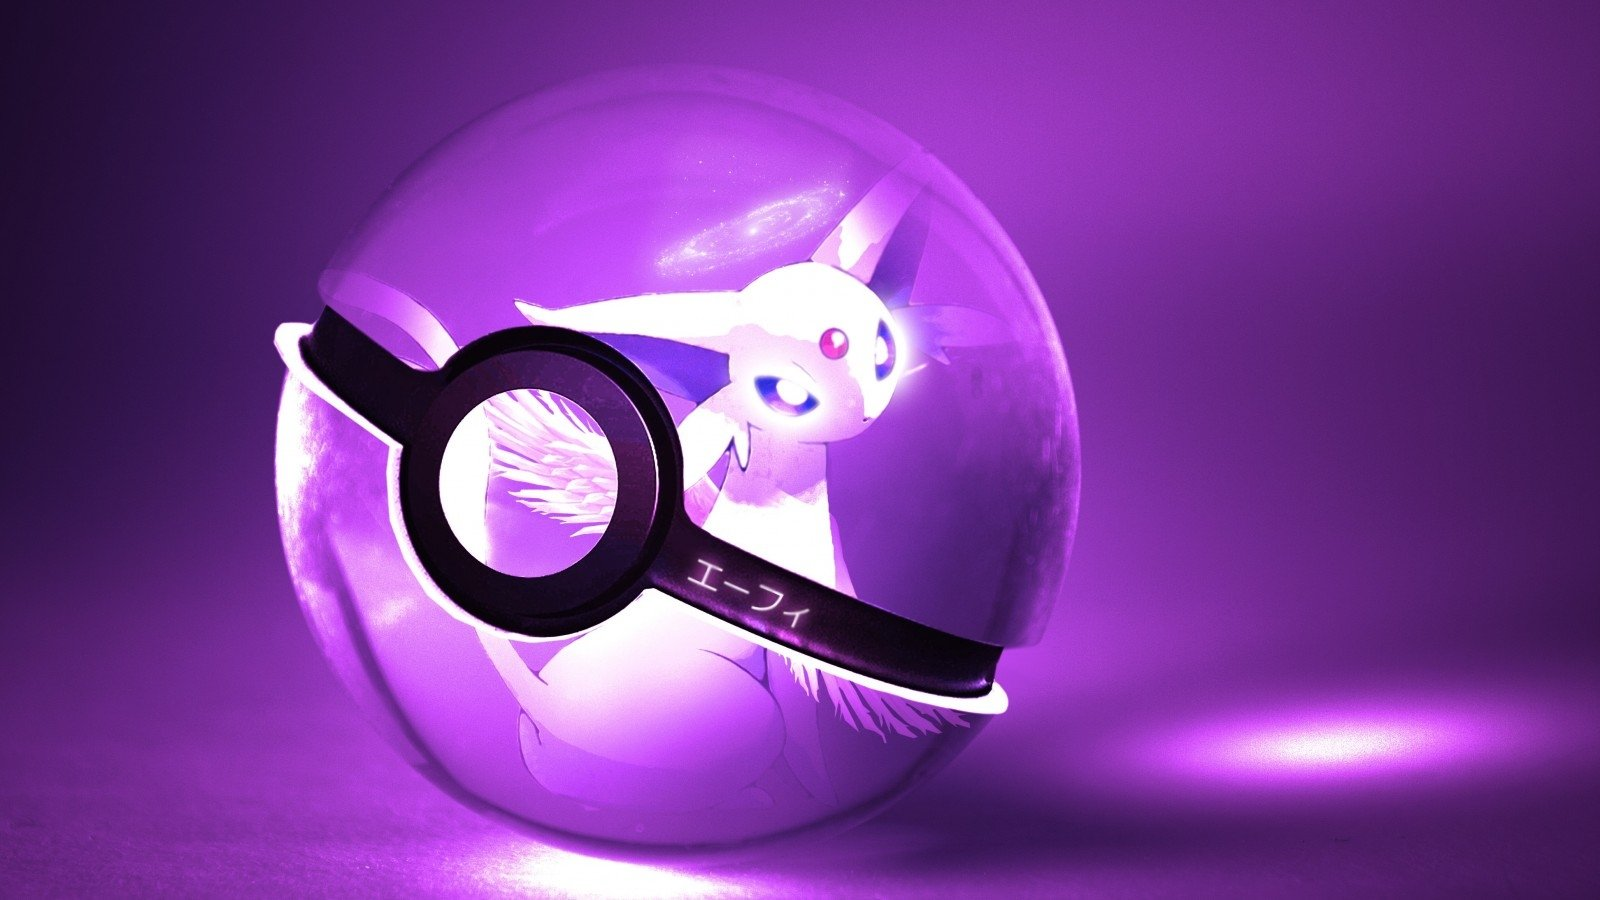 Anime - Pokémon  Espeon (Pokémon) Eeveelutions Pokeball Wallpaper